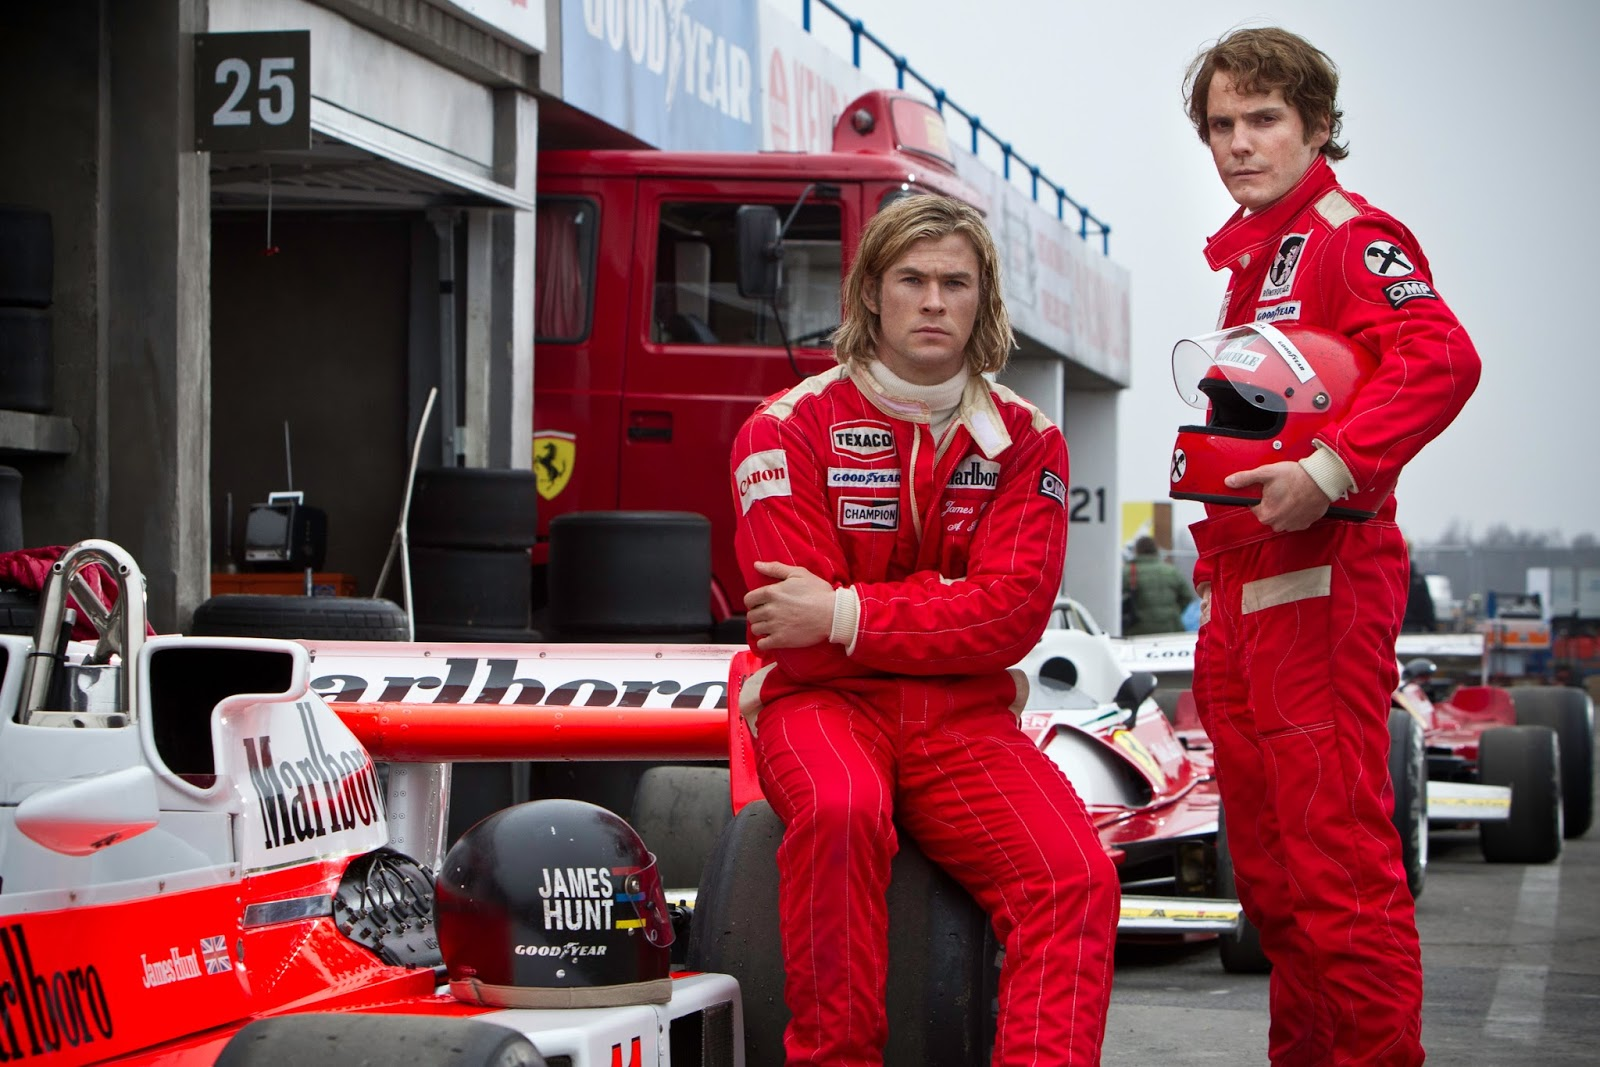 Rush movie new hd wallpapers high definition all hd wallpapers high definiton wallpapers in the hollywood movies named as rush movie new hd wallpapers high definition are listed above we have found some of the best voltagebd Image collections